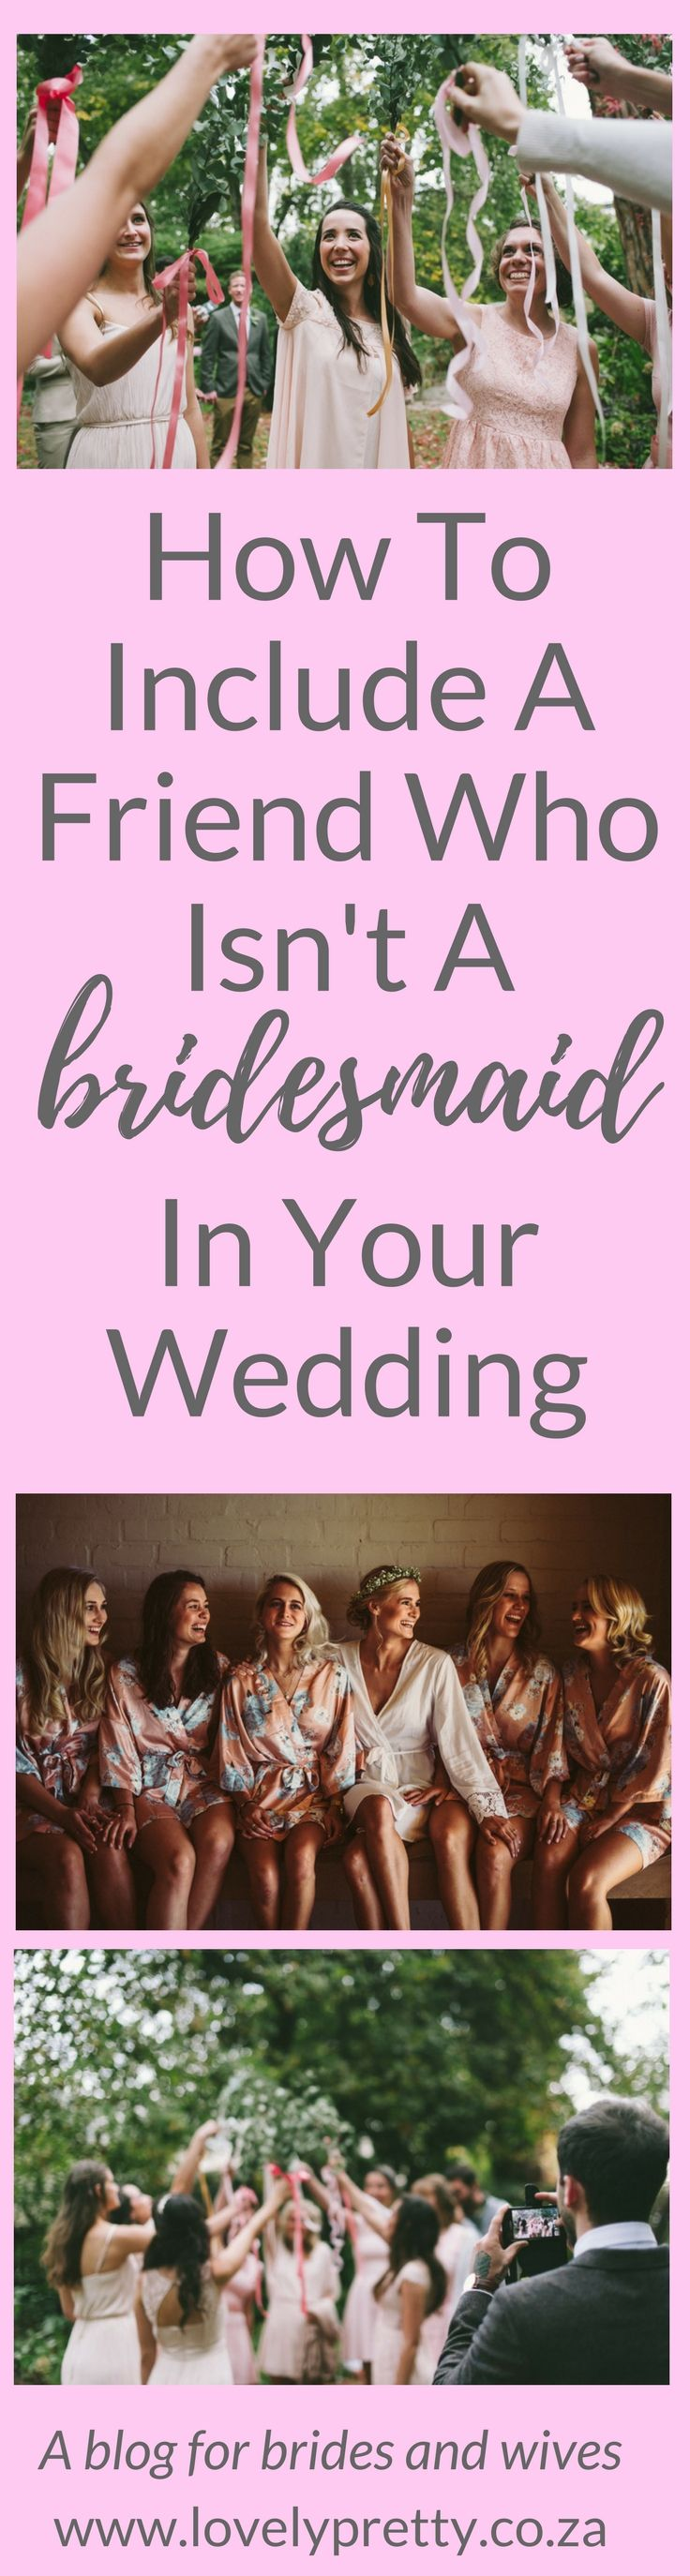 Creative ways to include your friend in your wedding even if she isn't a bridesmaid | Lovely Pretty | A blog for brides and wives